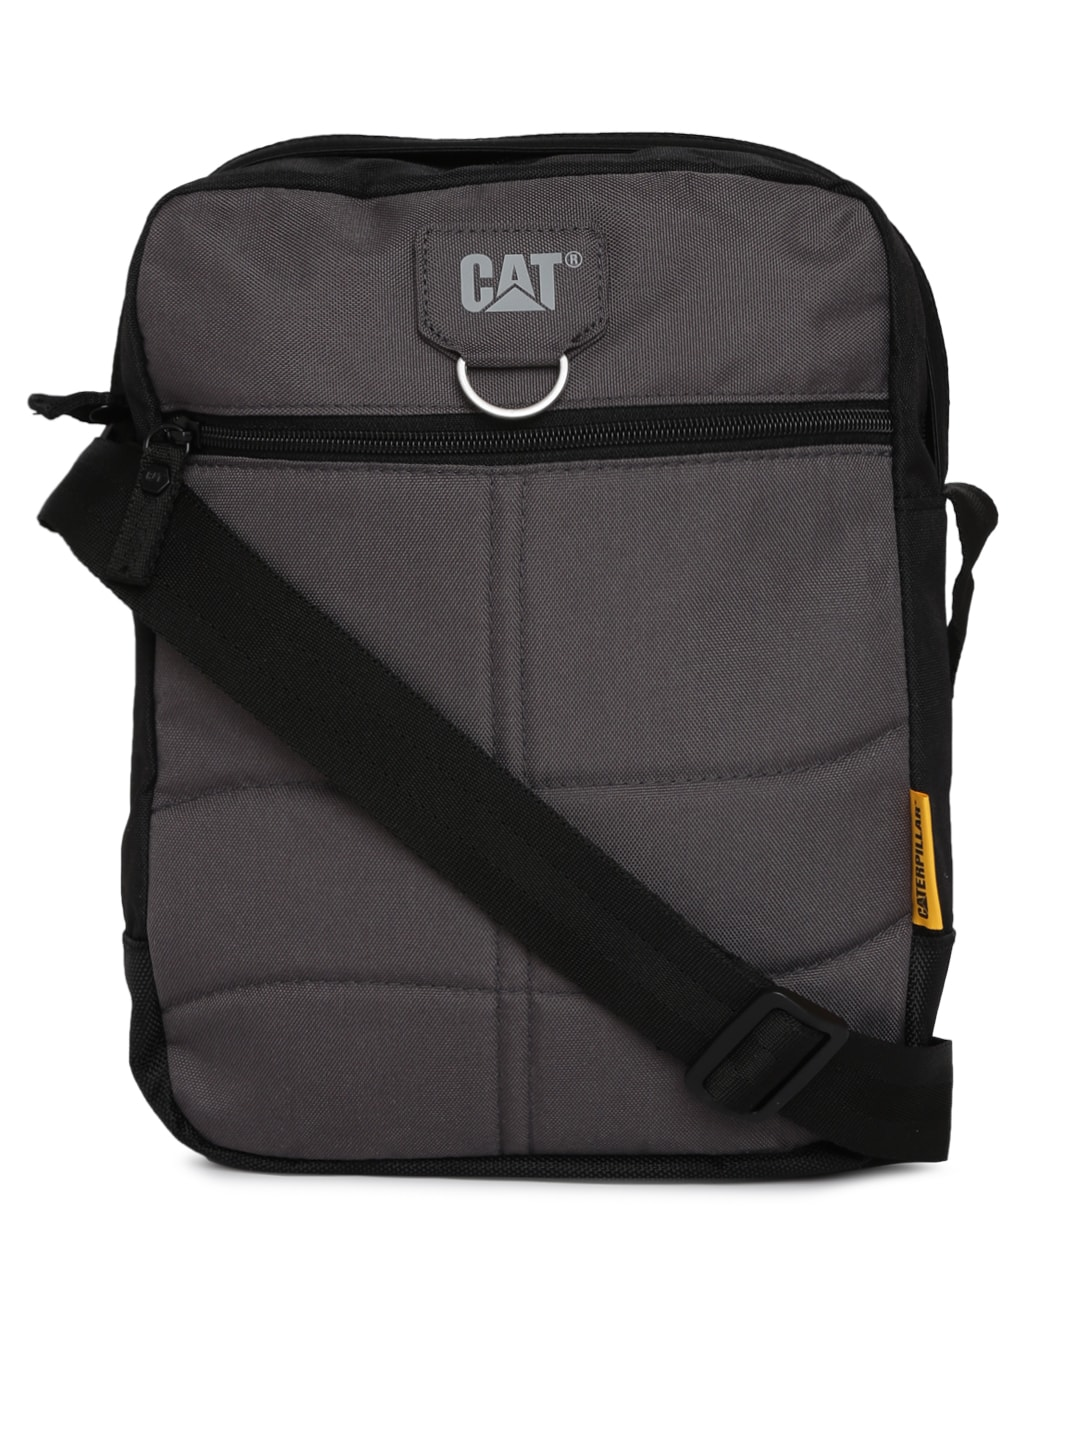 6ac70c9790 Cat Shoes Messenger Bags - Buy Cat Shoes Messenger Bags online in India